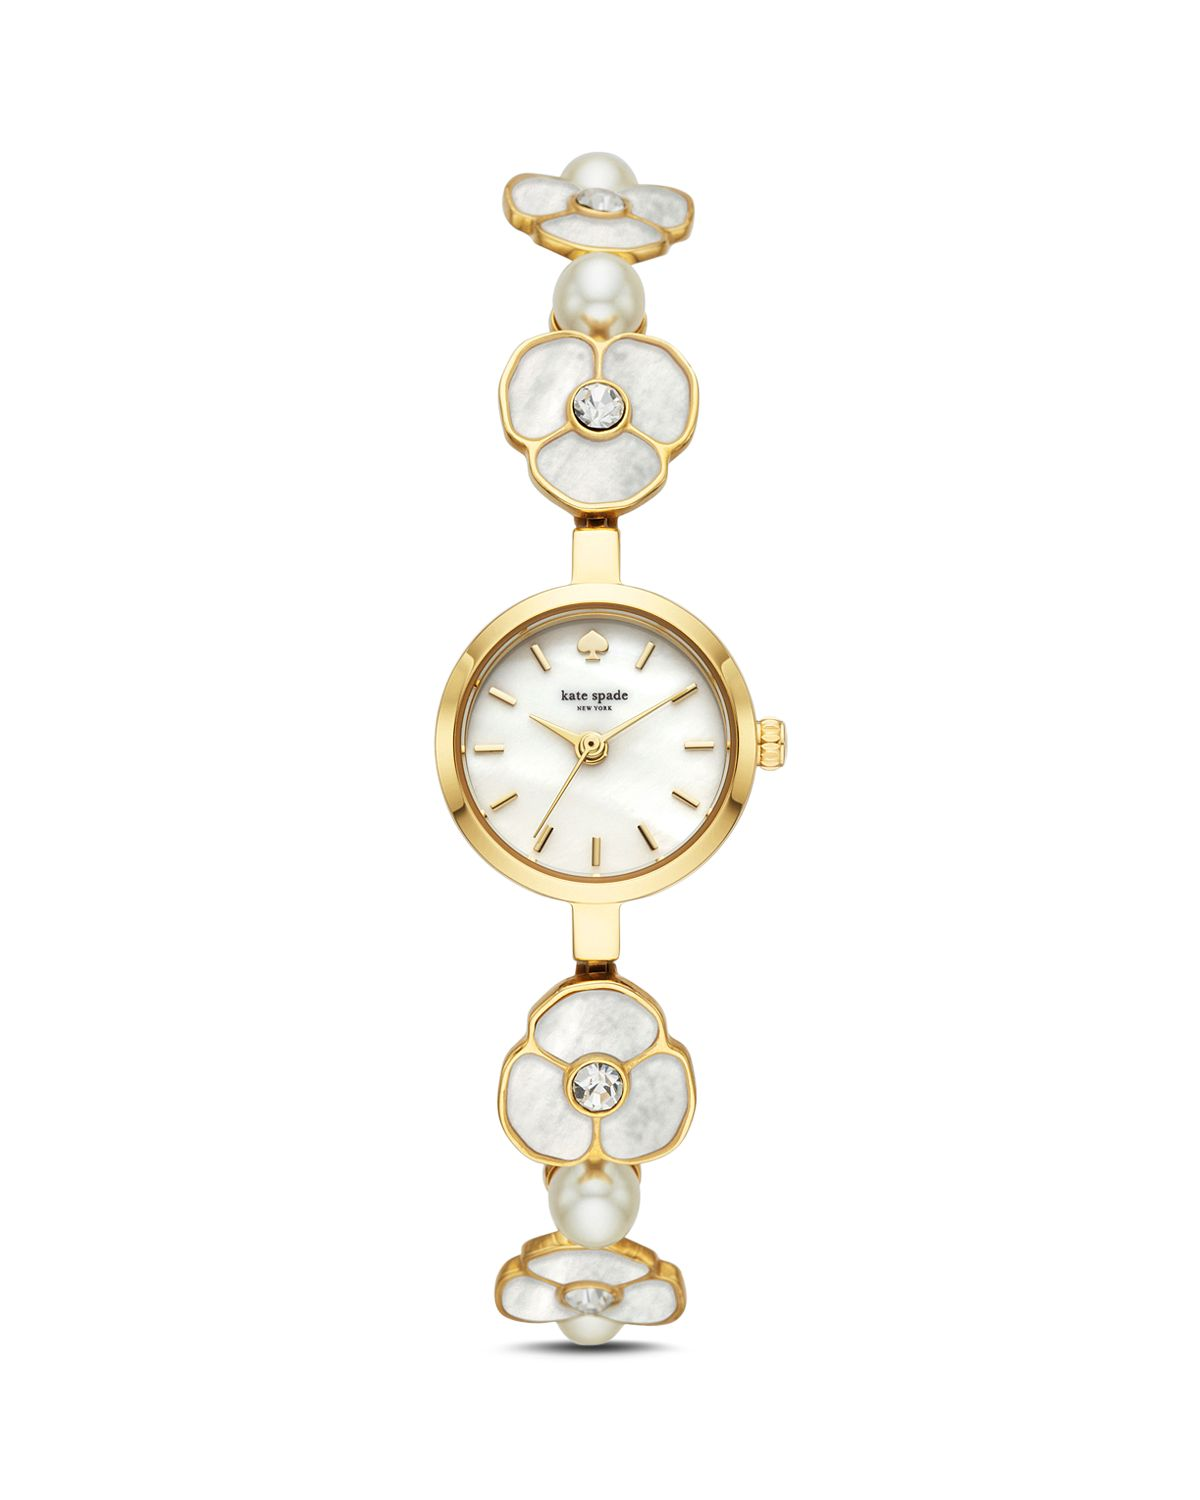 Metro Daisy Chain Watch, 21mm by Kate Spade New York